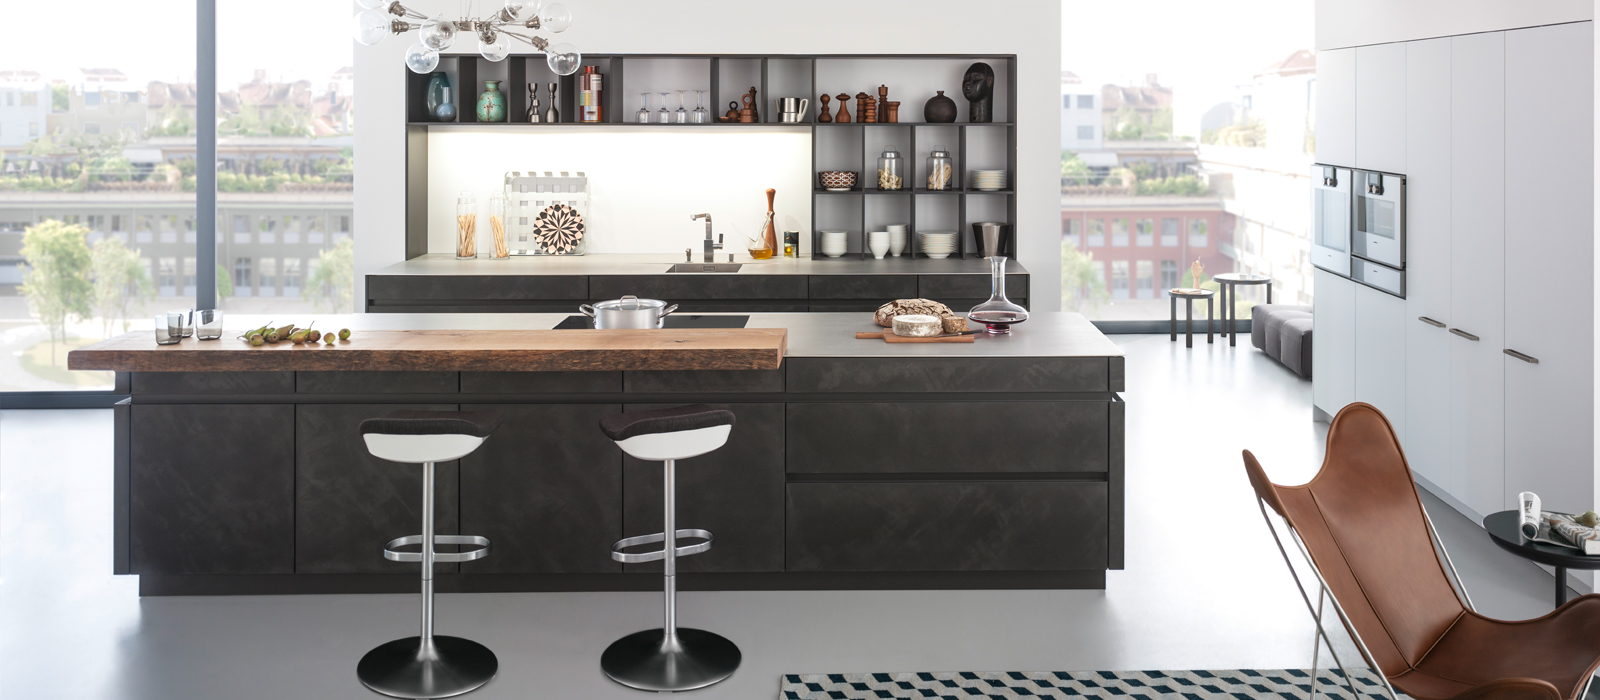 quality brand kitchen cabinets islands for small kitchens schedule a free consultation how much will my cost ...